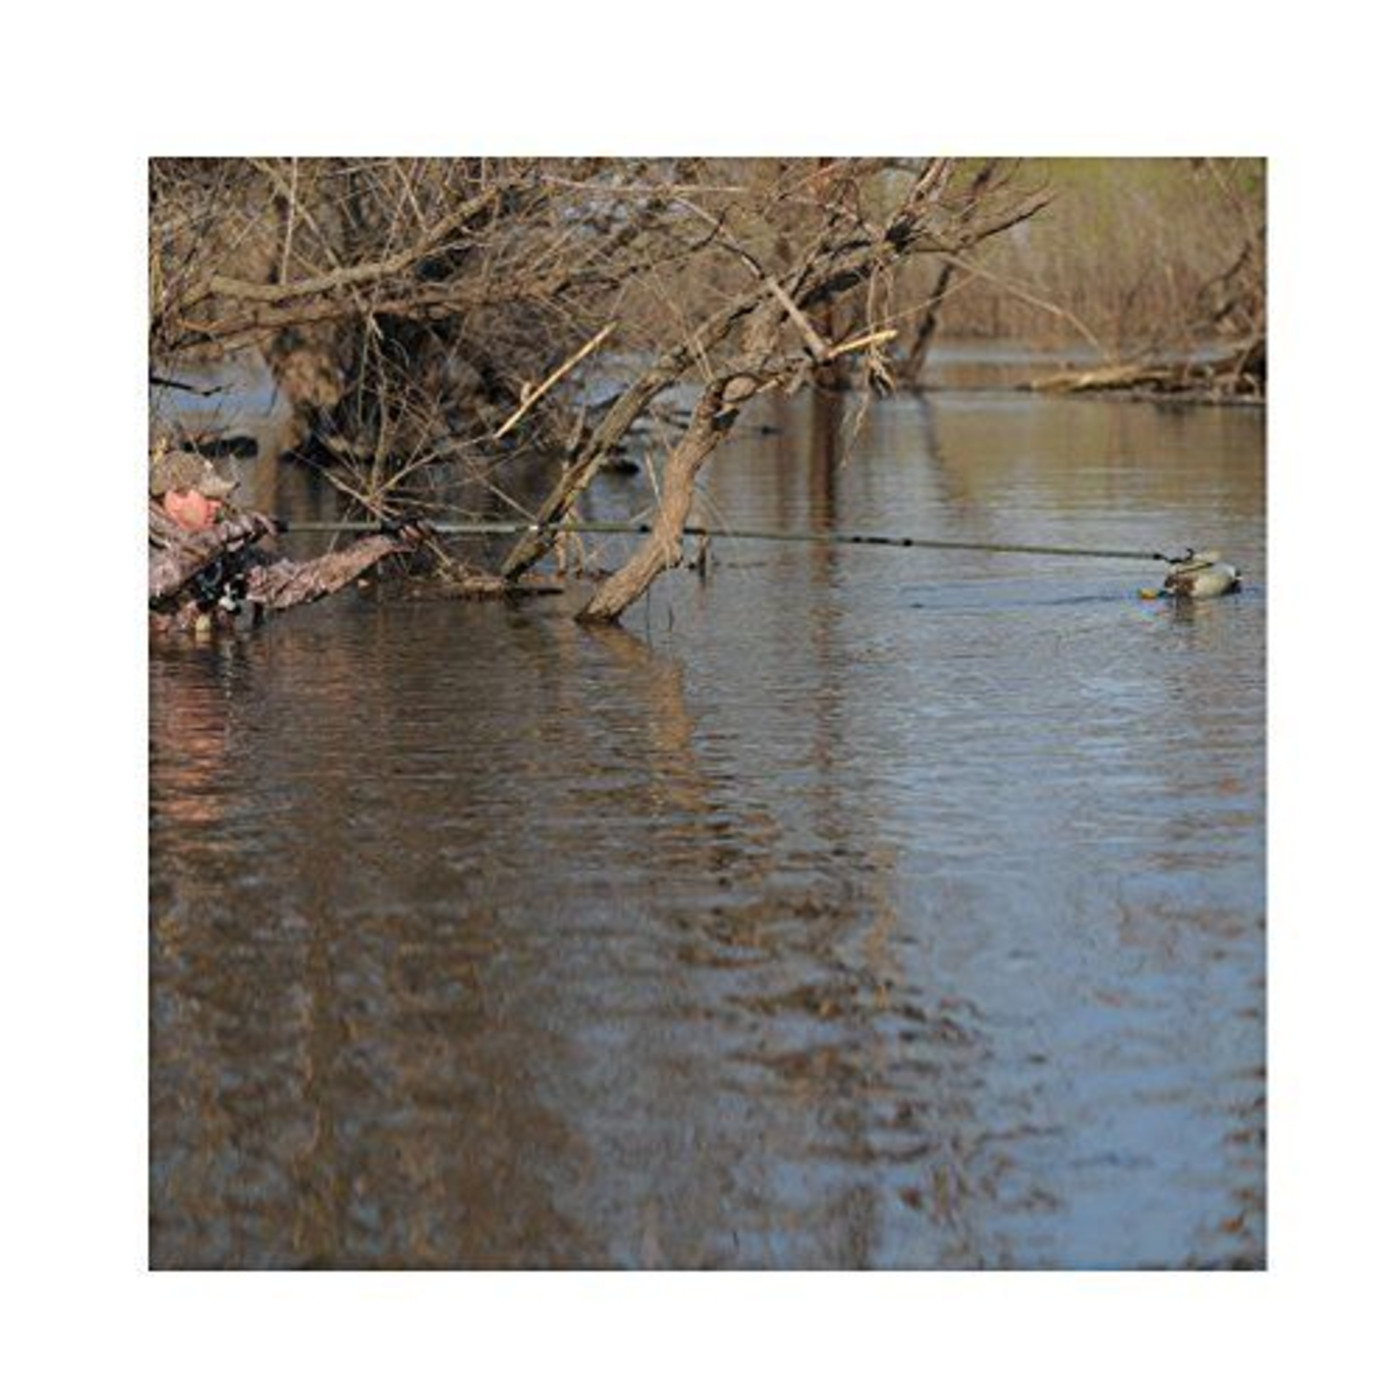 Avery 18 Foot Telescoping Decoy Retriever